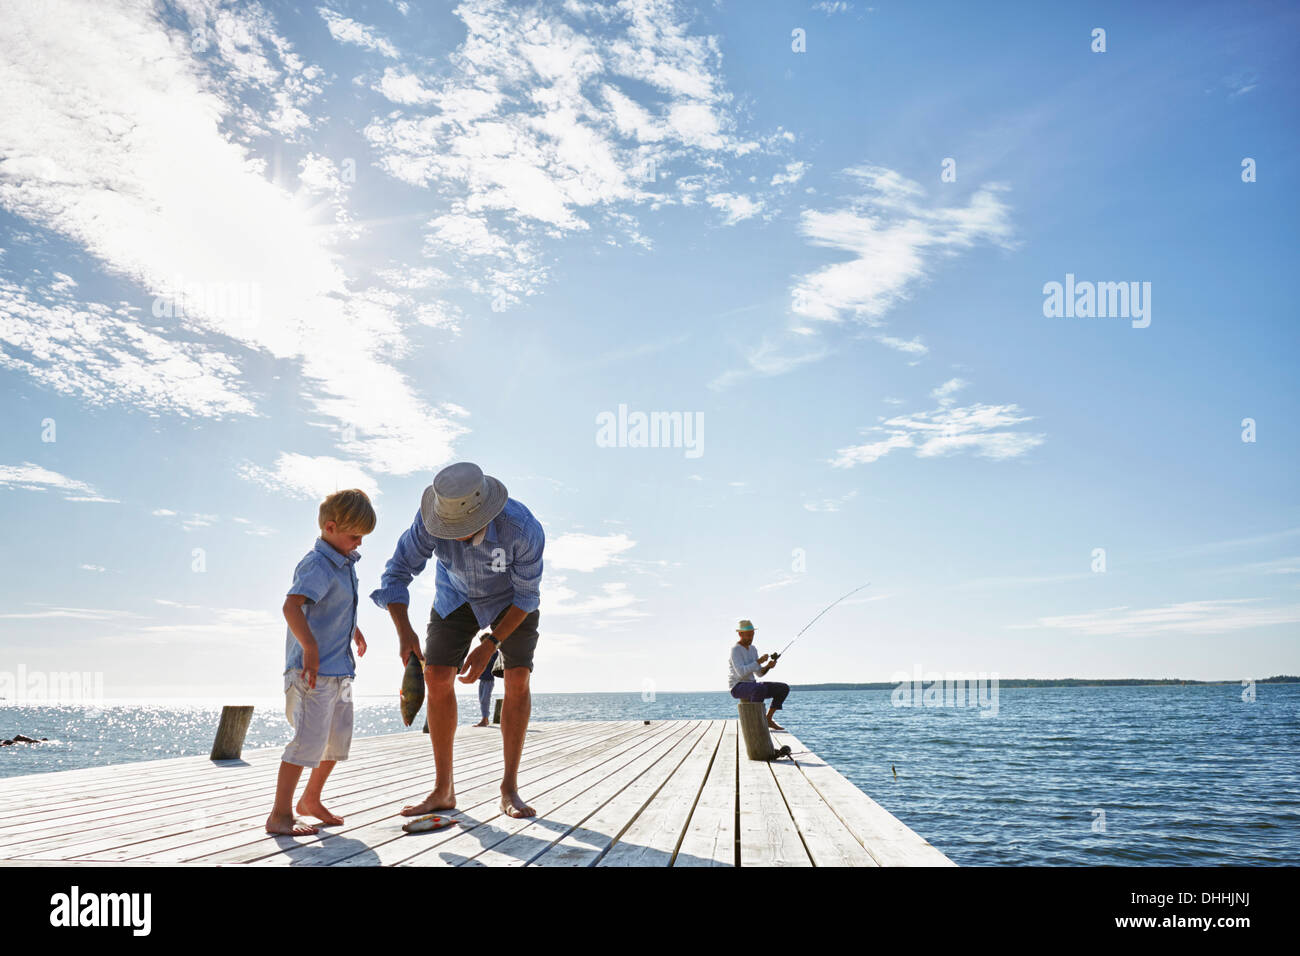 Grandfather and grandson with cuaght fish, Utvalnas, Sweden - Stock Image